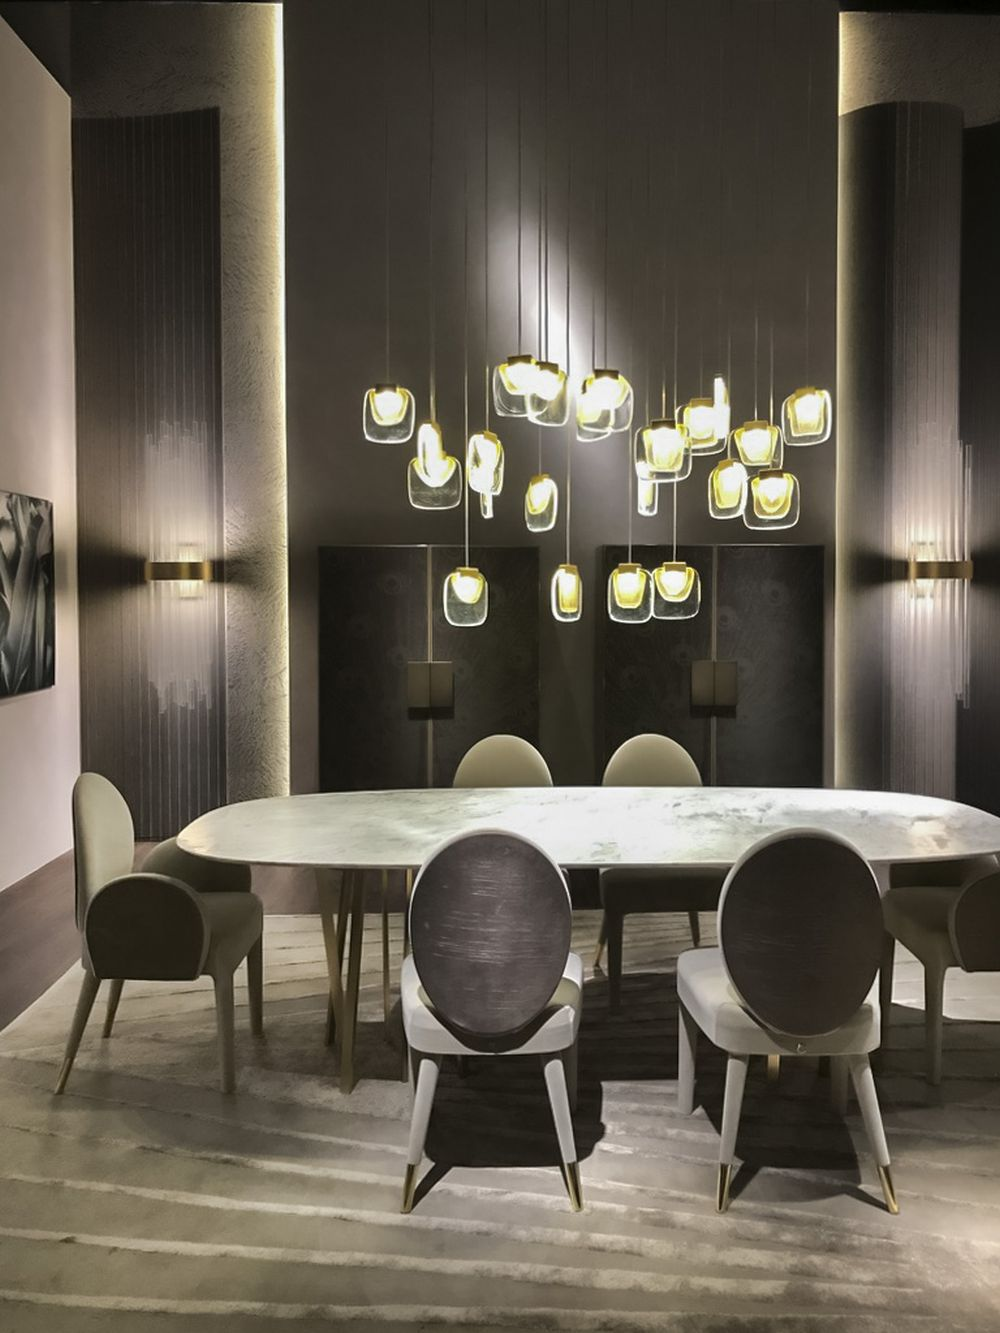 Lighting Fixtures that Will Add a Bid Dose of Drama to Your Room